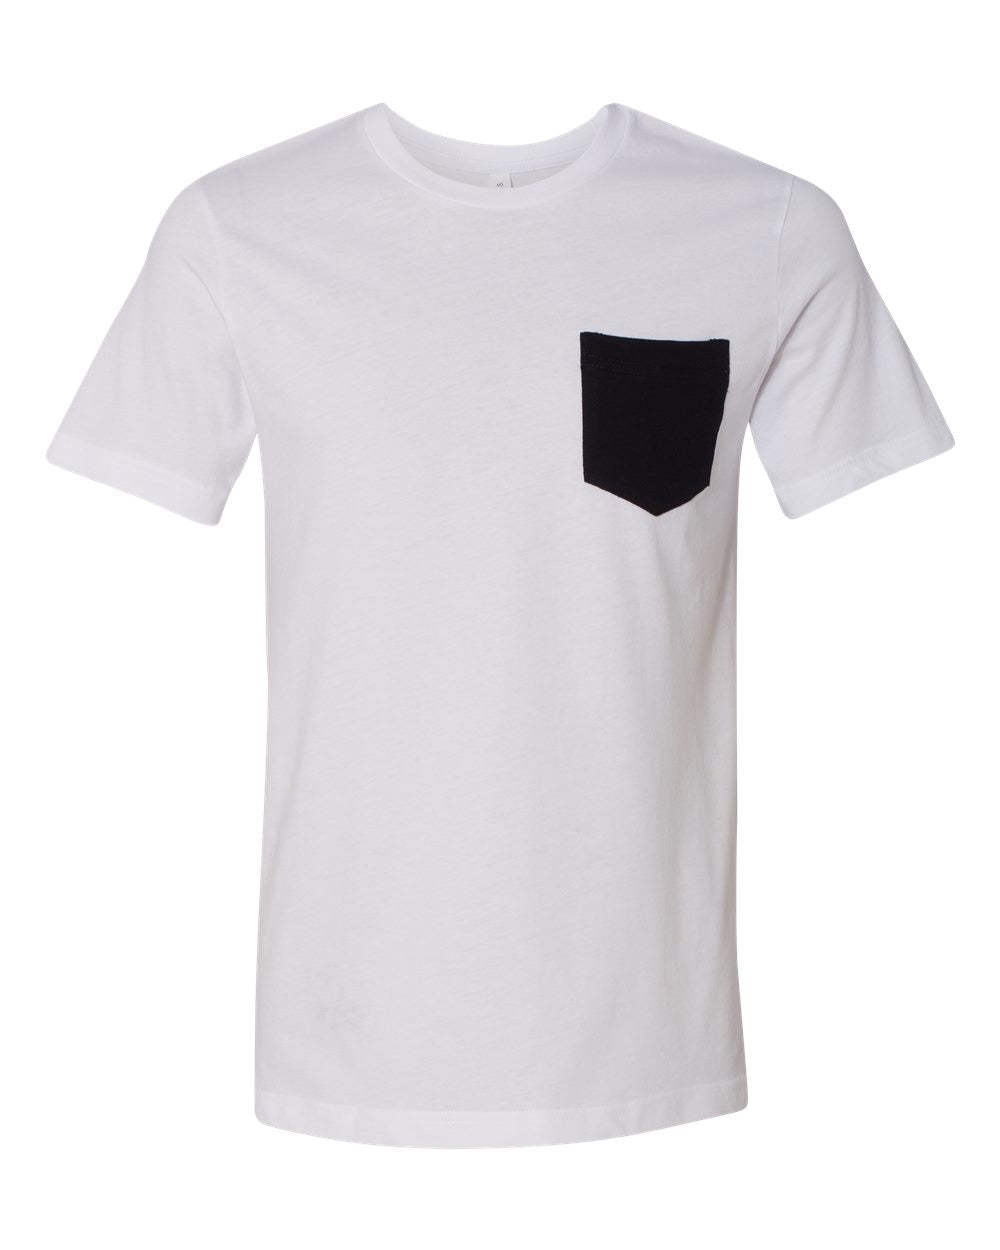 MEN'S BASIC TEE - WHITE WITH BLACK POCKET